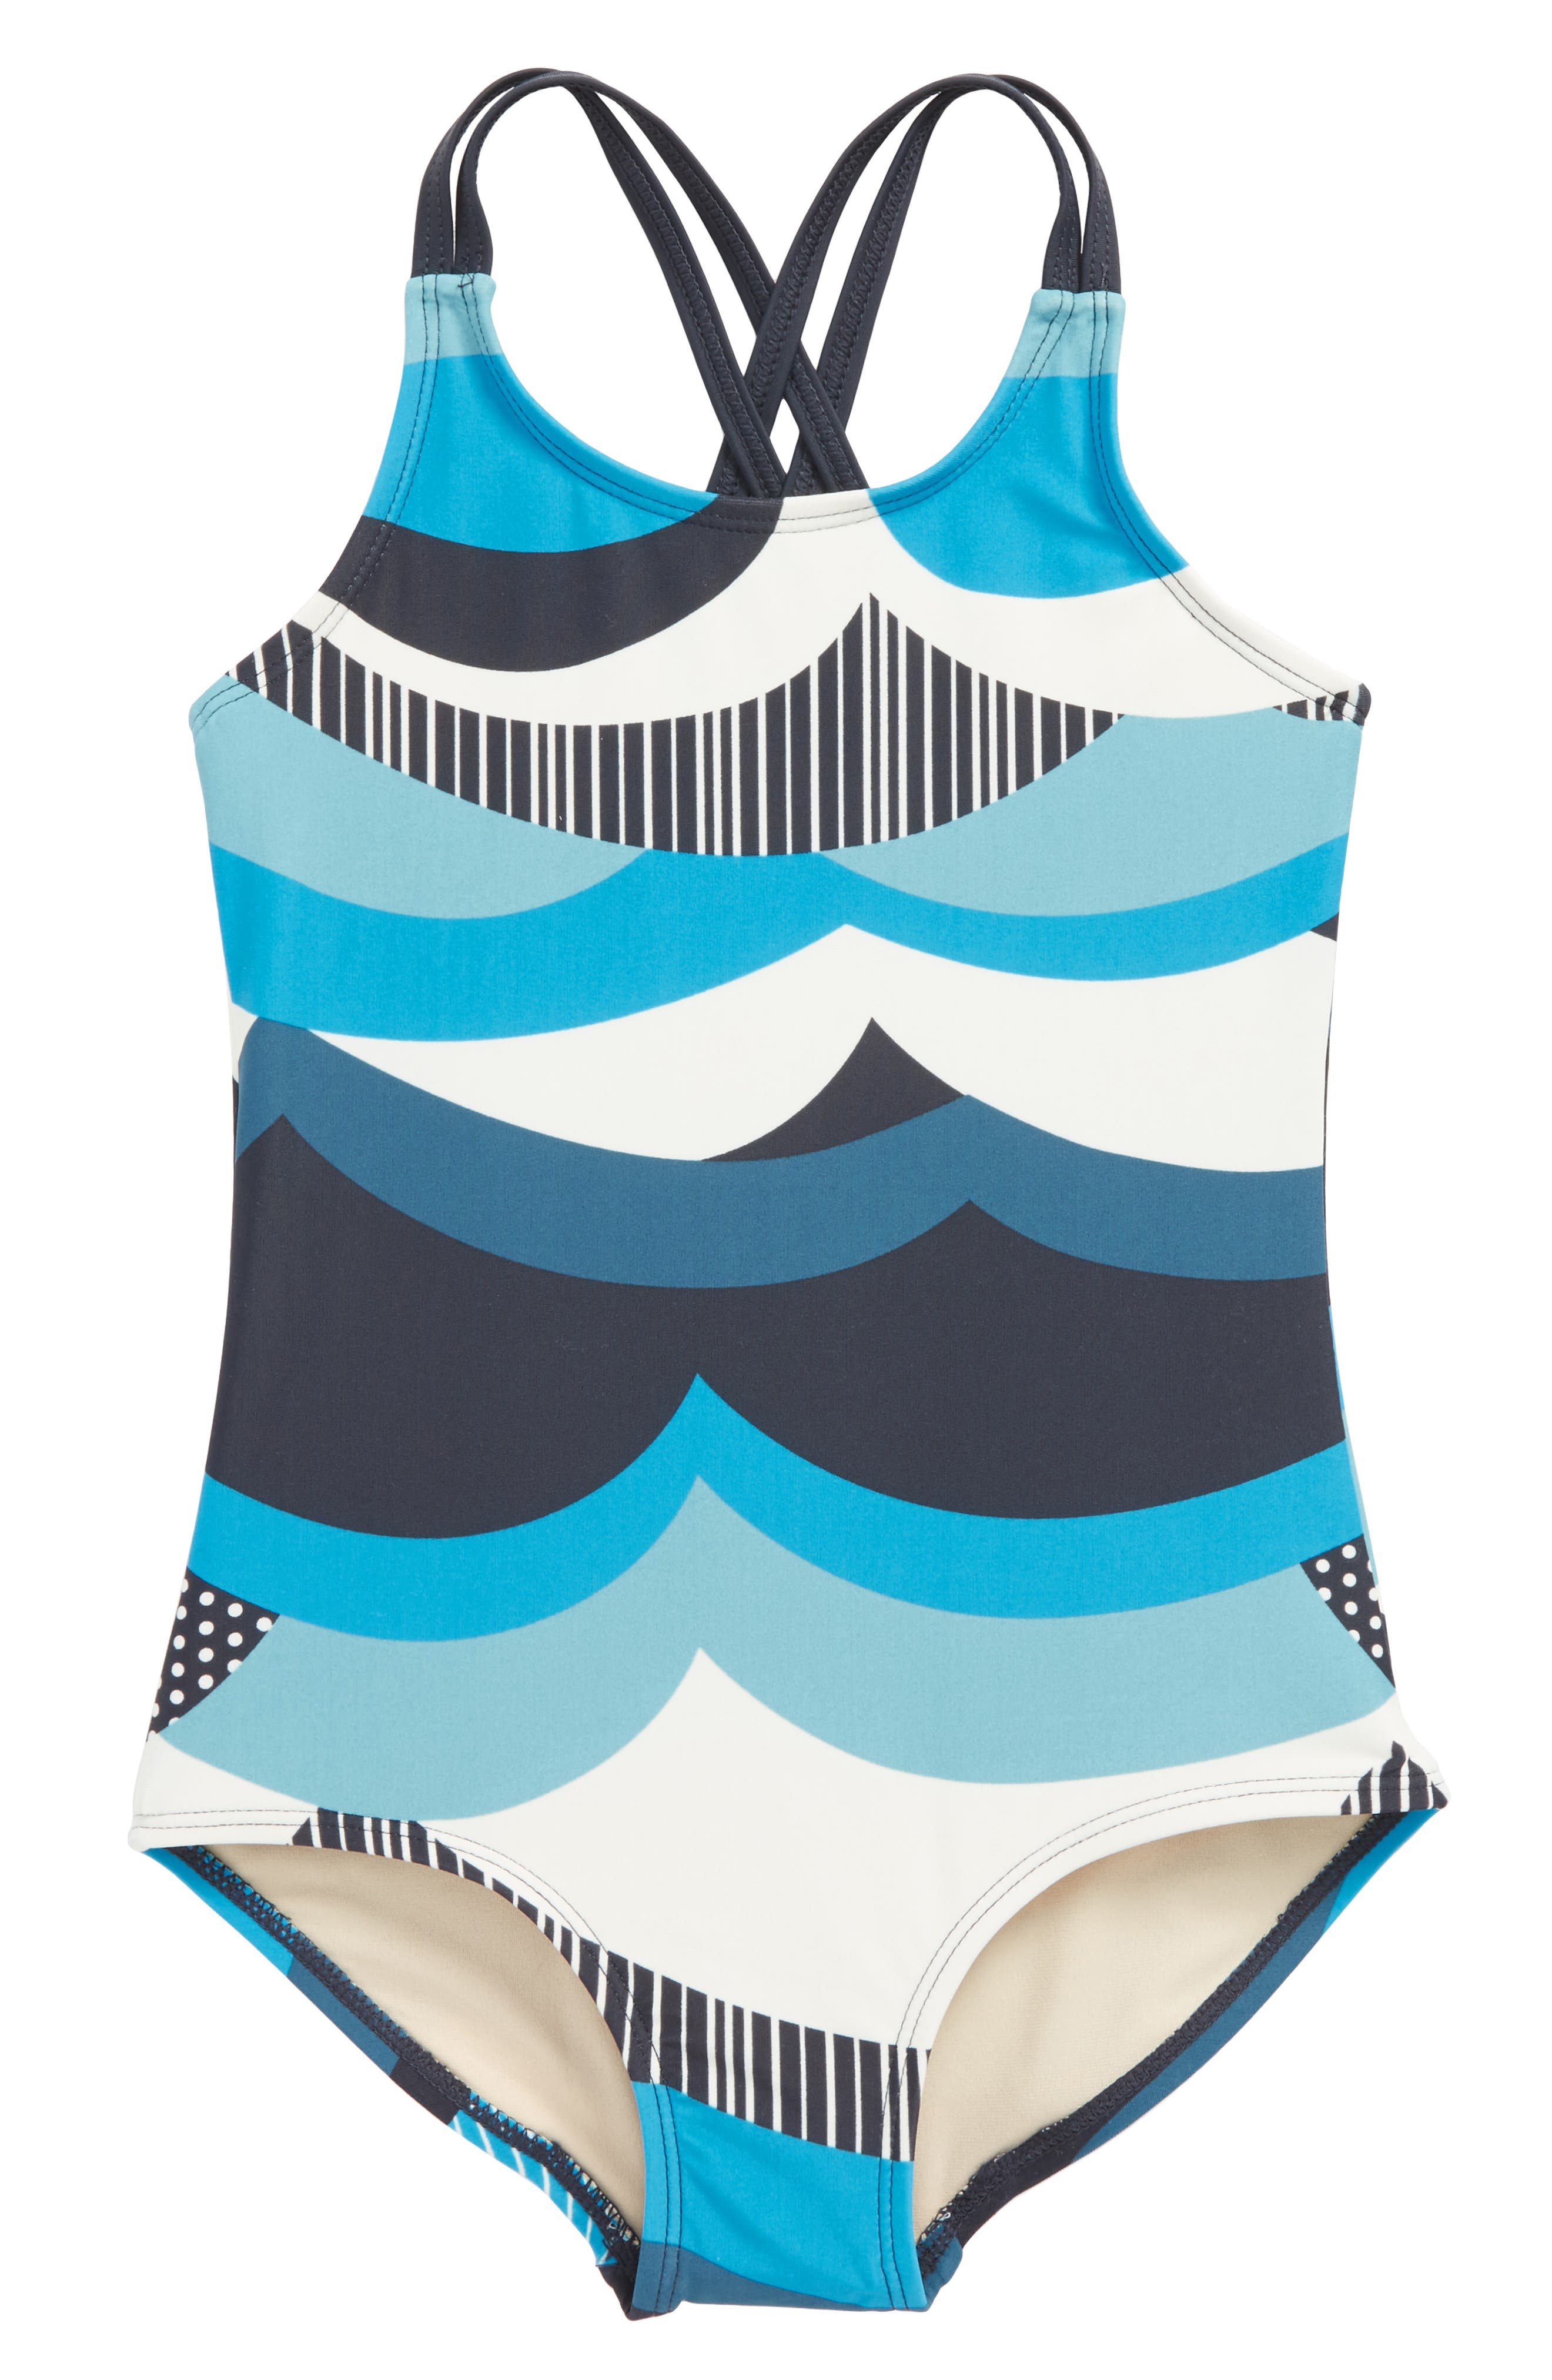 Make Waves One-Piece Swimsuit,                             Main thumbnail 1, color,                             411